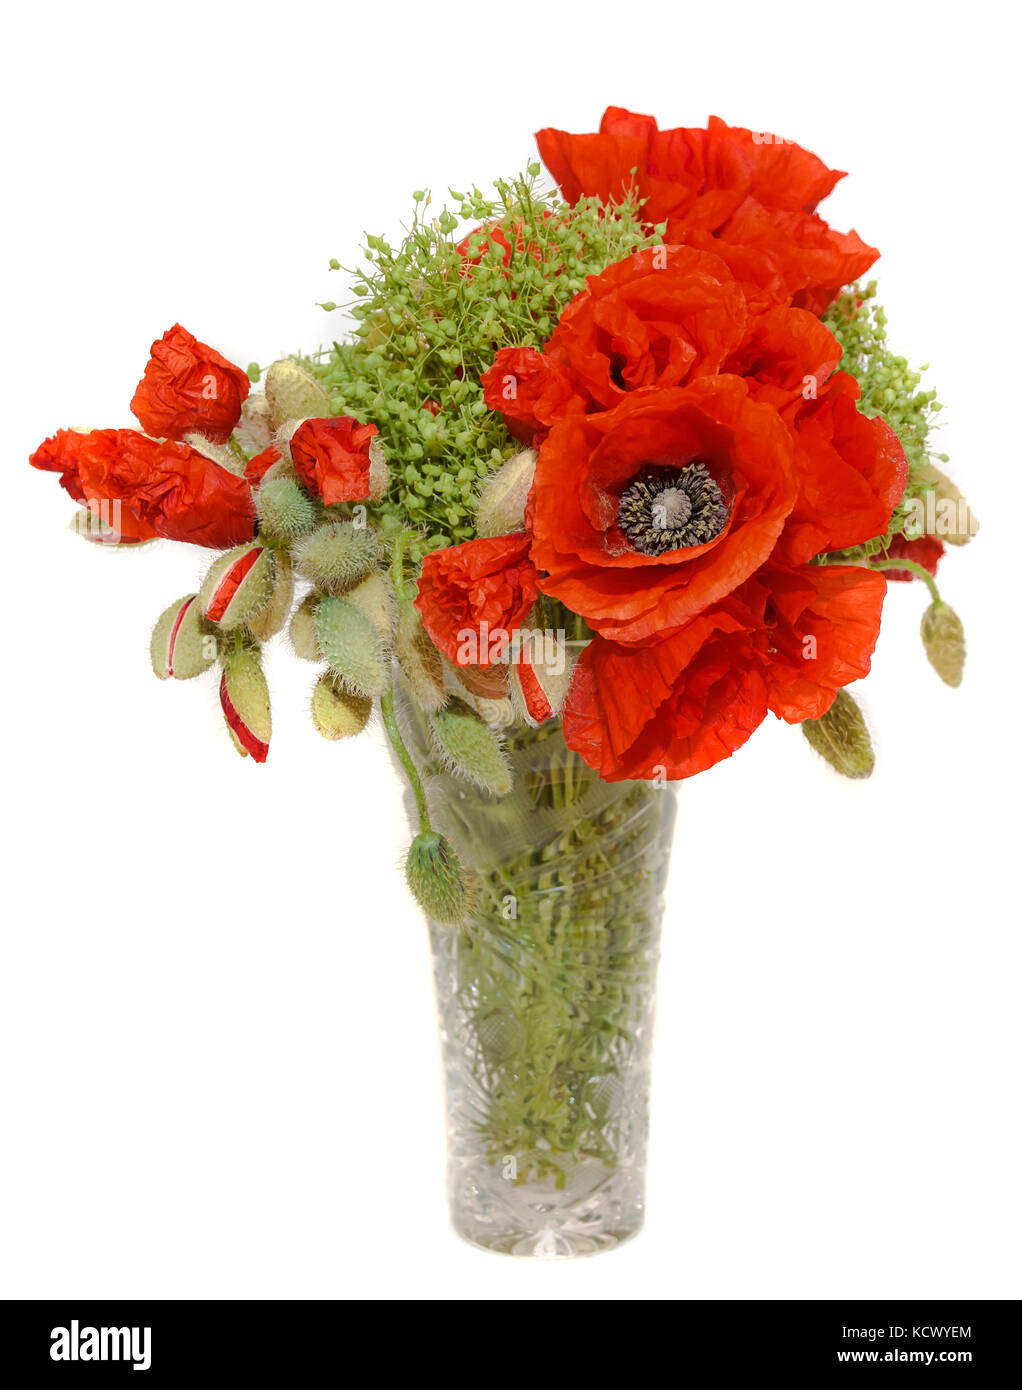 Red wild flowers of Papaver rhoeas bouquet in a transparent vase, corn field poppy with buds, close up. - Stock Image